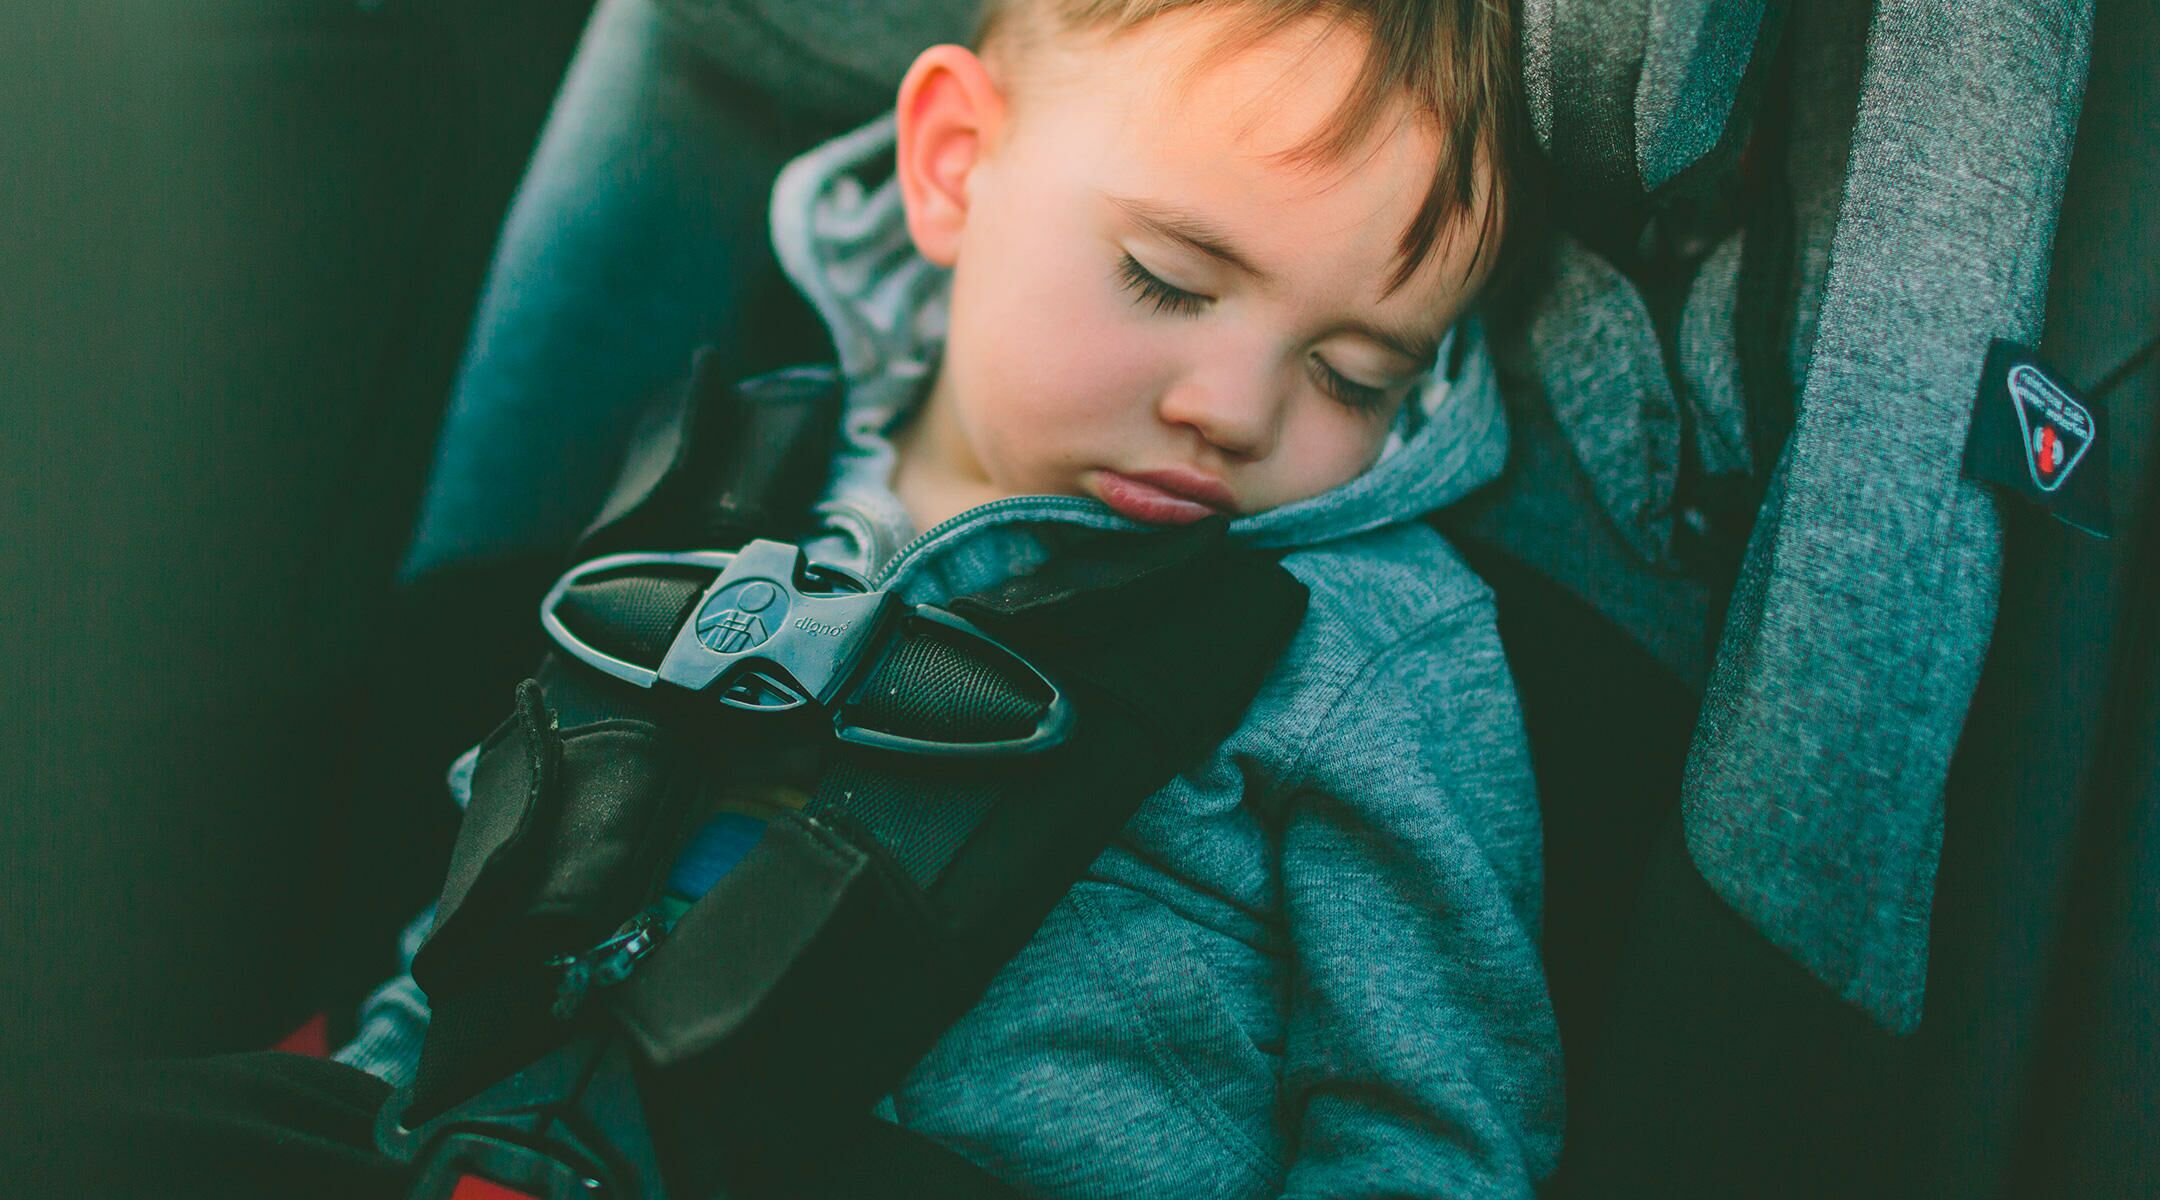 Toddler Boy Asleep In Car Seat